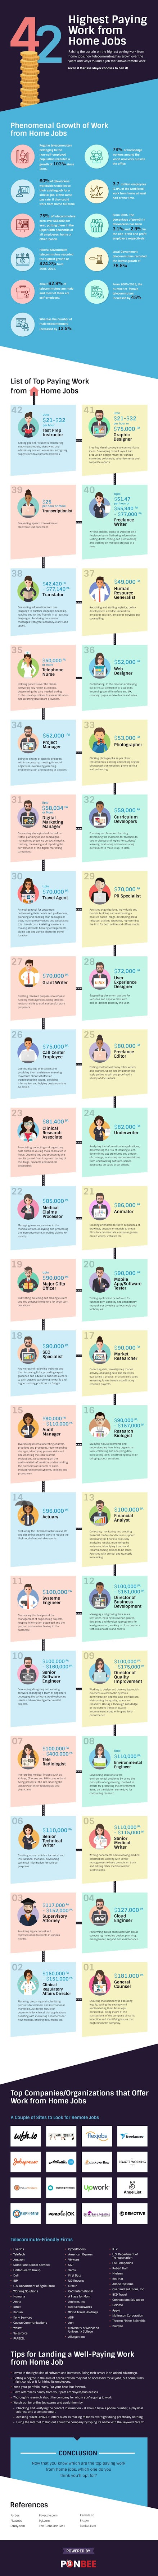 42 Highest Paying Work from Home Jobs #infographic #Career & Jobs #infographics #Home Jobs #Infographic # Jobs